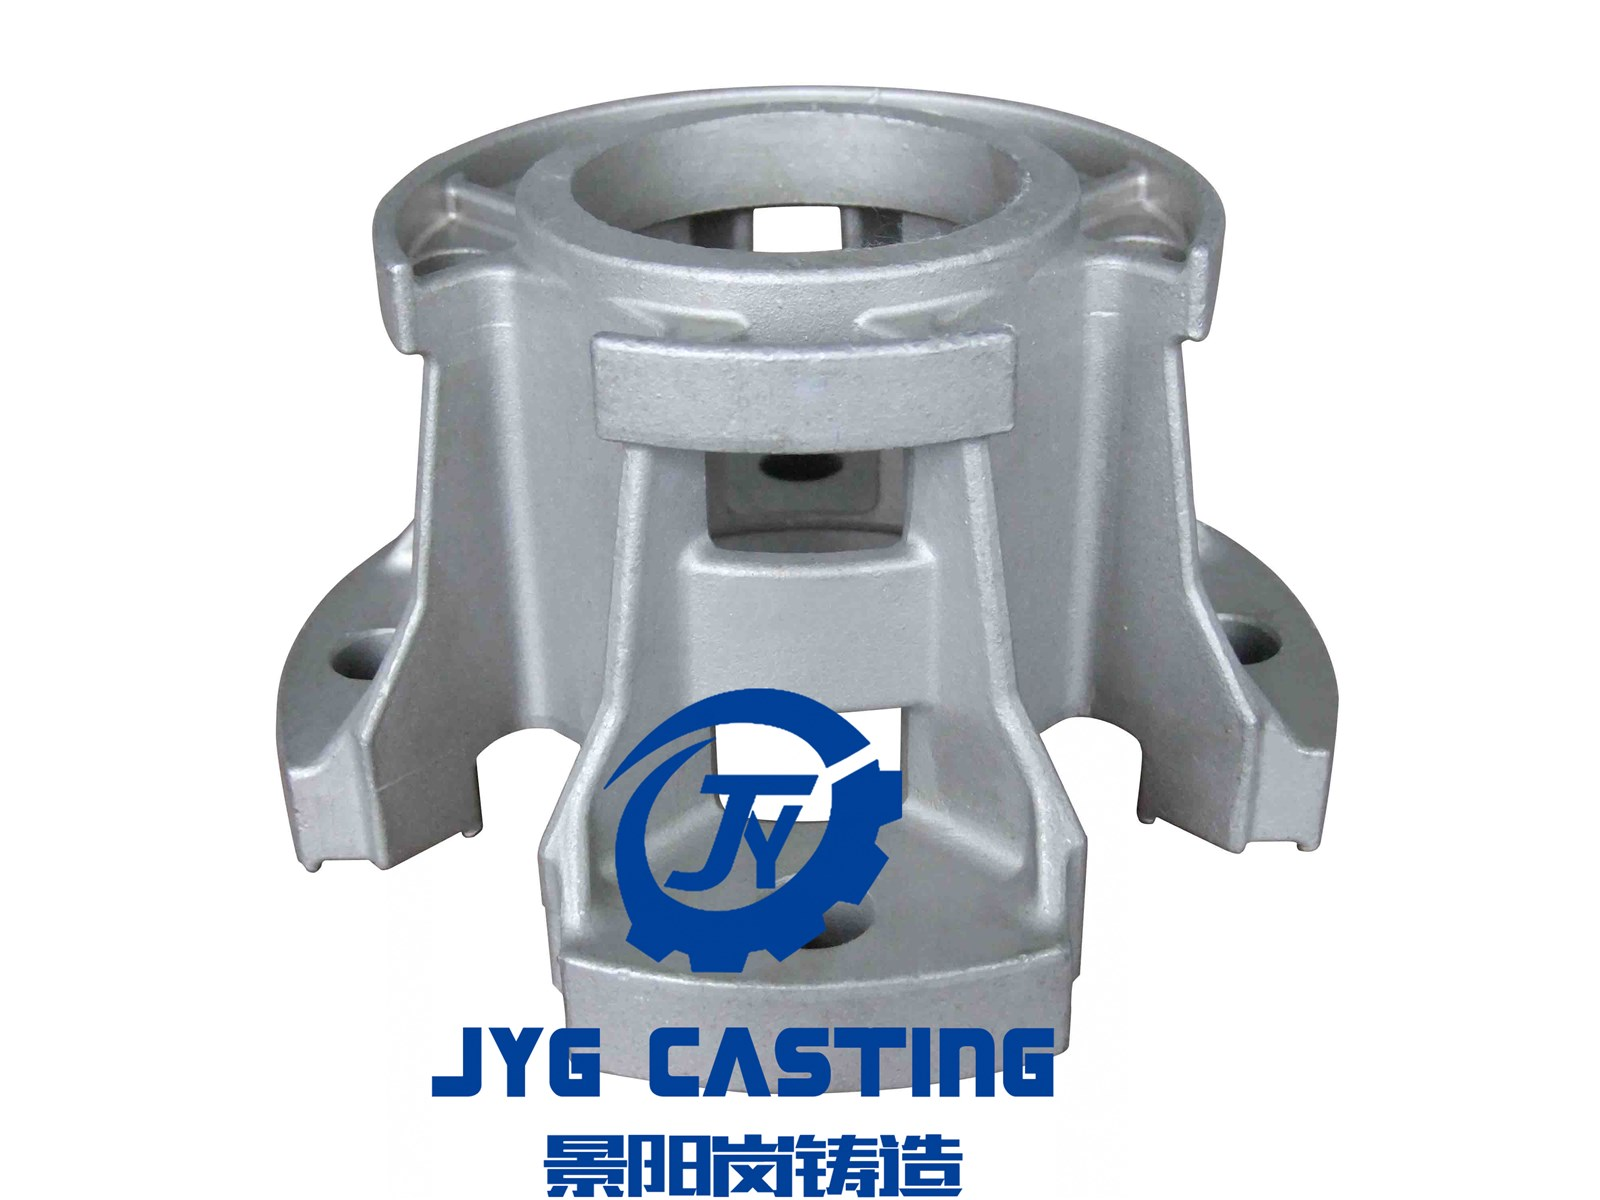 JYG Casting Customizes Quality Investment Casting Auto Parts